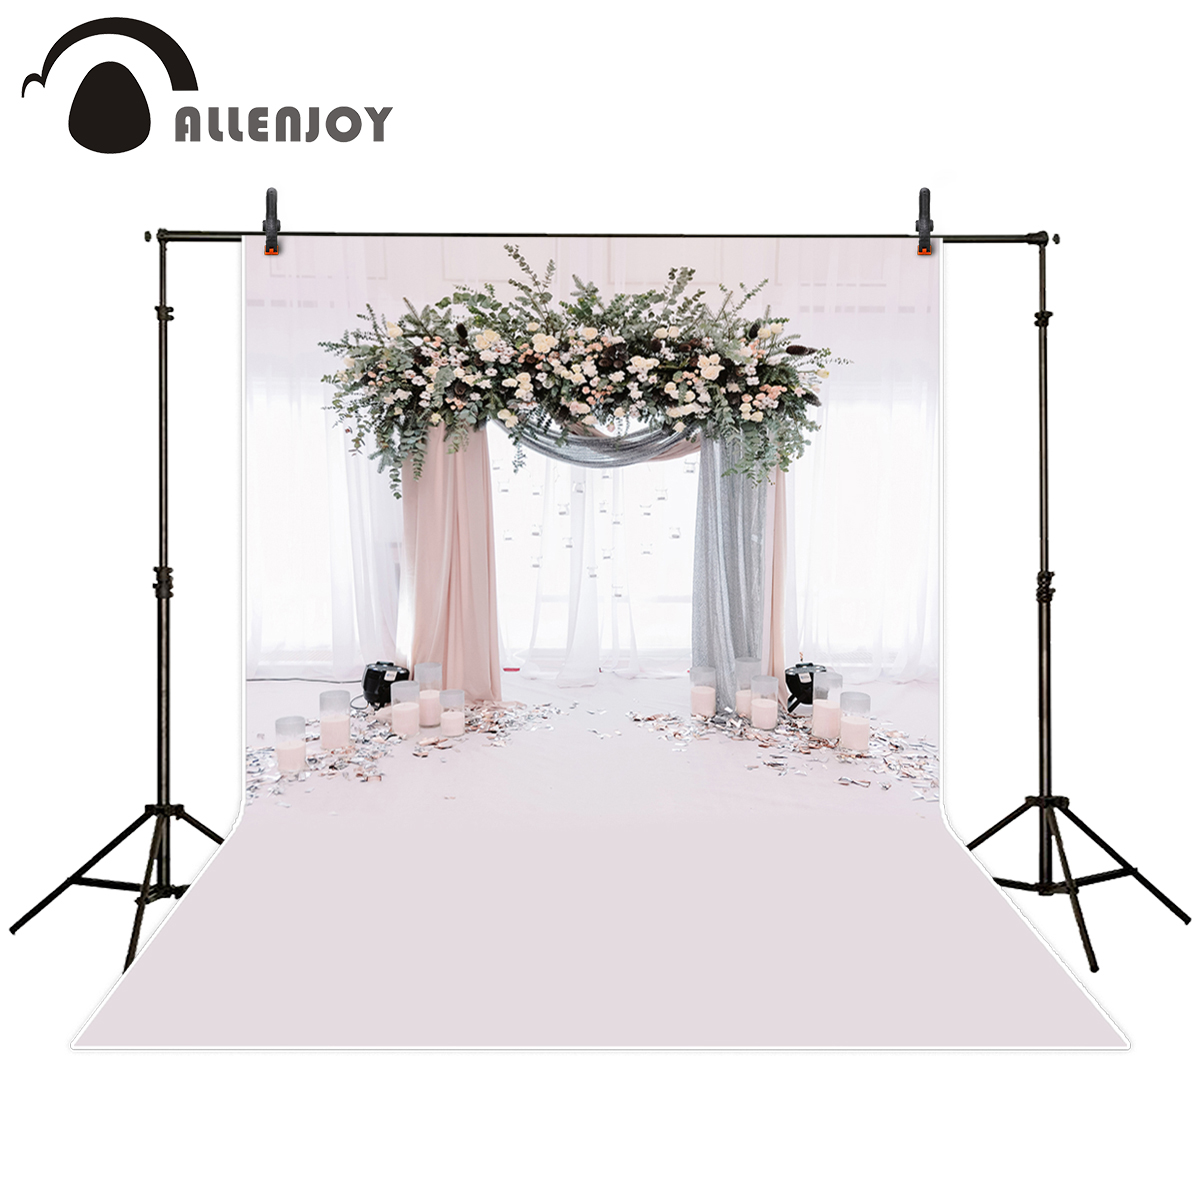 Allenjoy photography backdrop beautiful wedding archway flowers Romantic background photo studio new design camera fotografica